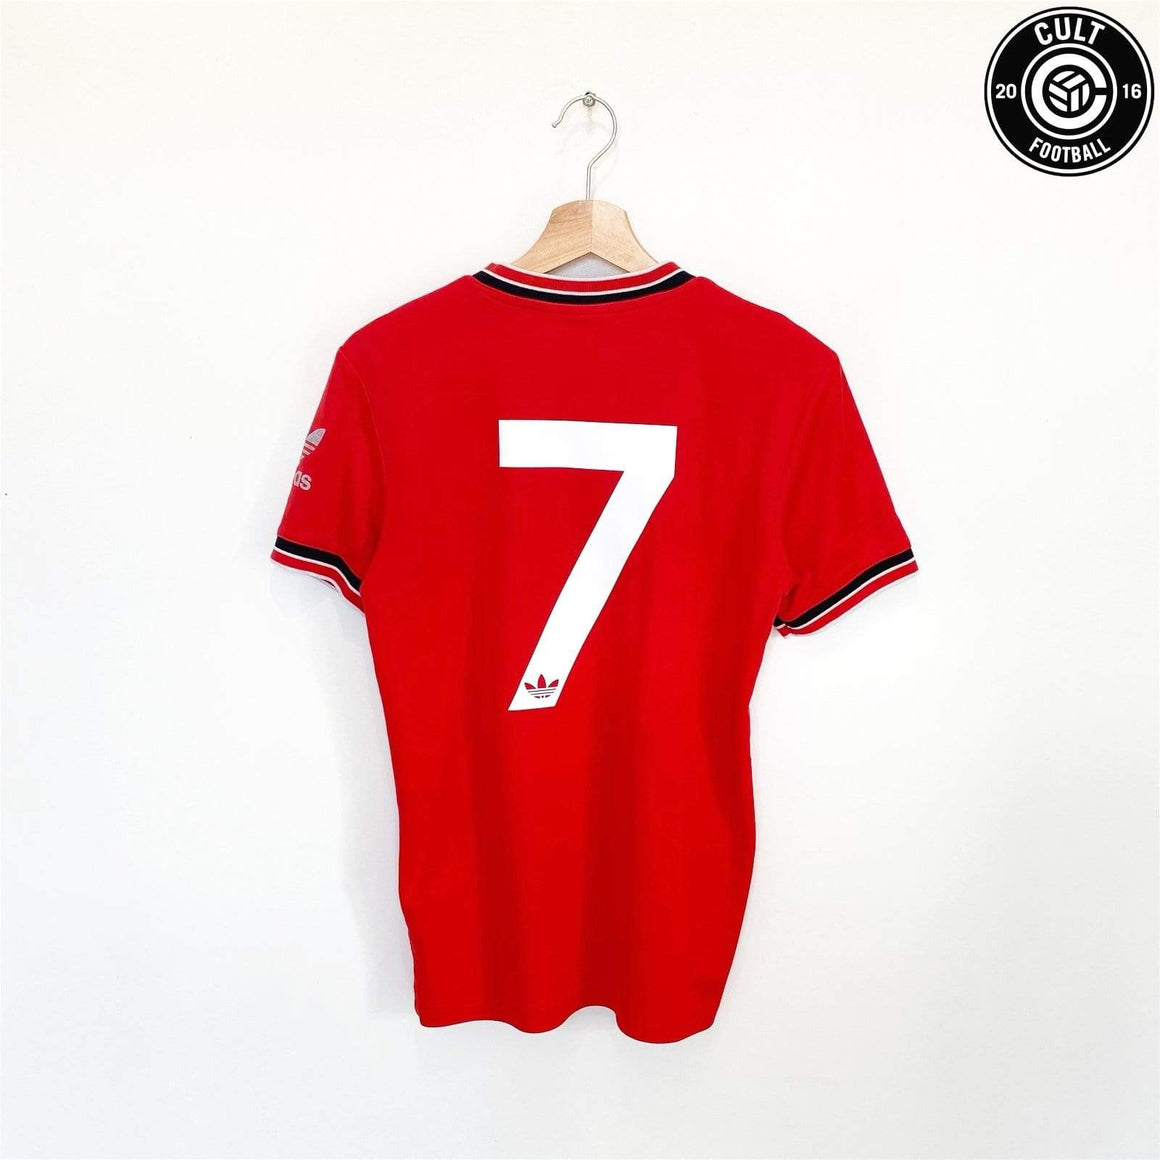 Cult Football 1985 ROBSON #7 Manchester United adidas Originals FA Cup Football Shirt (S)